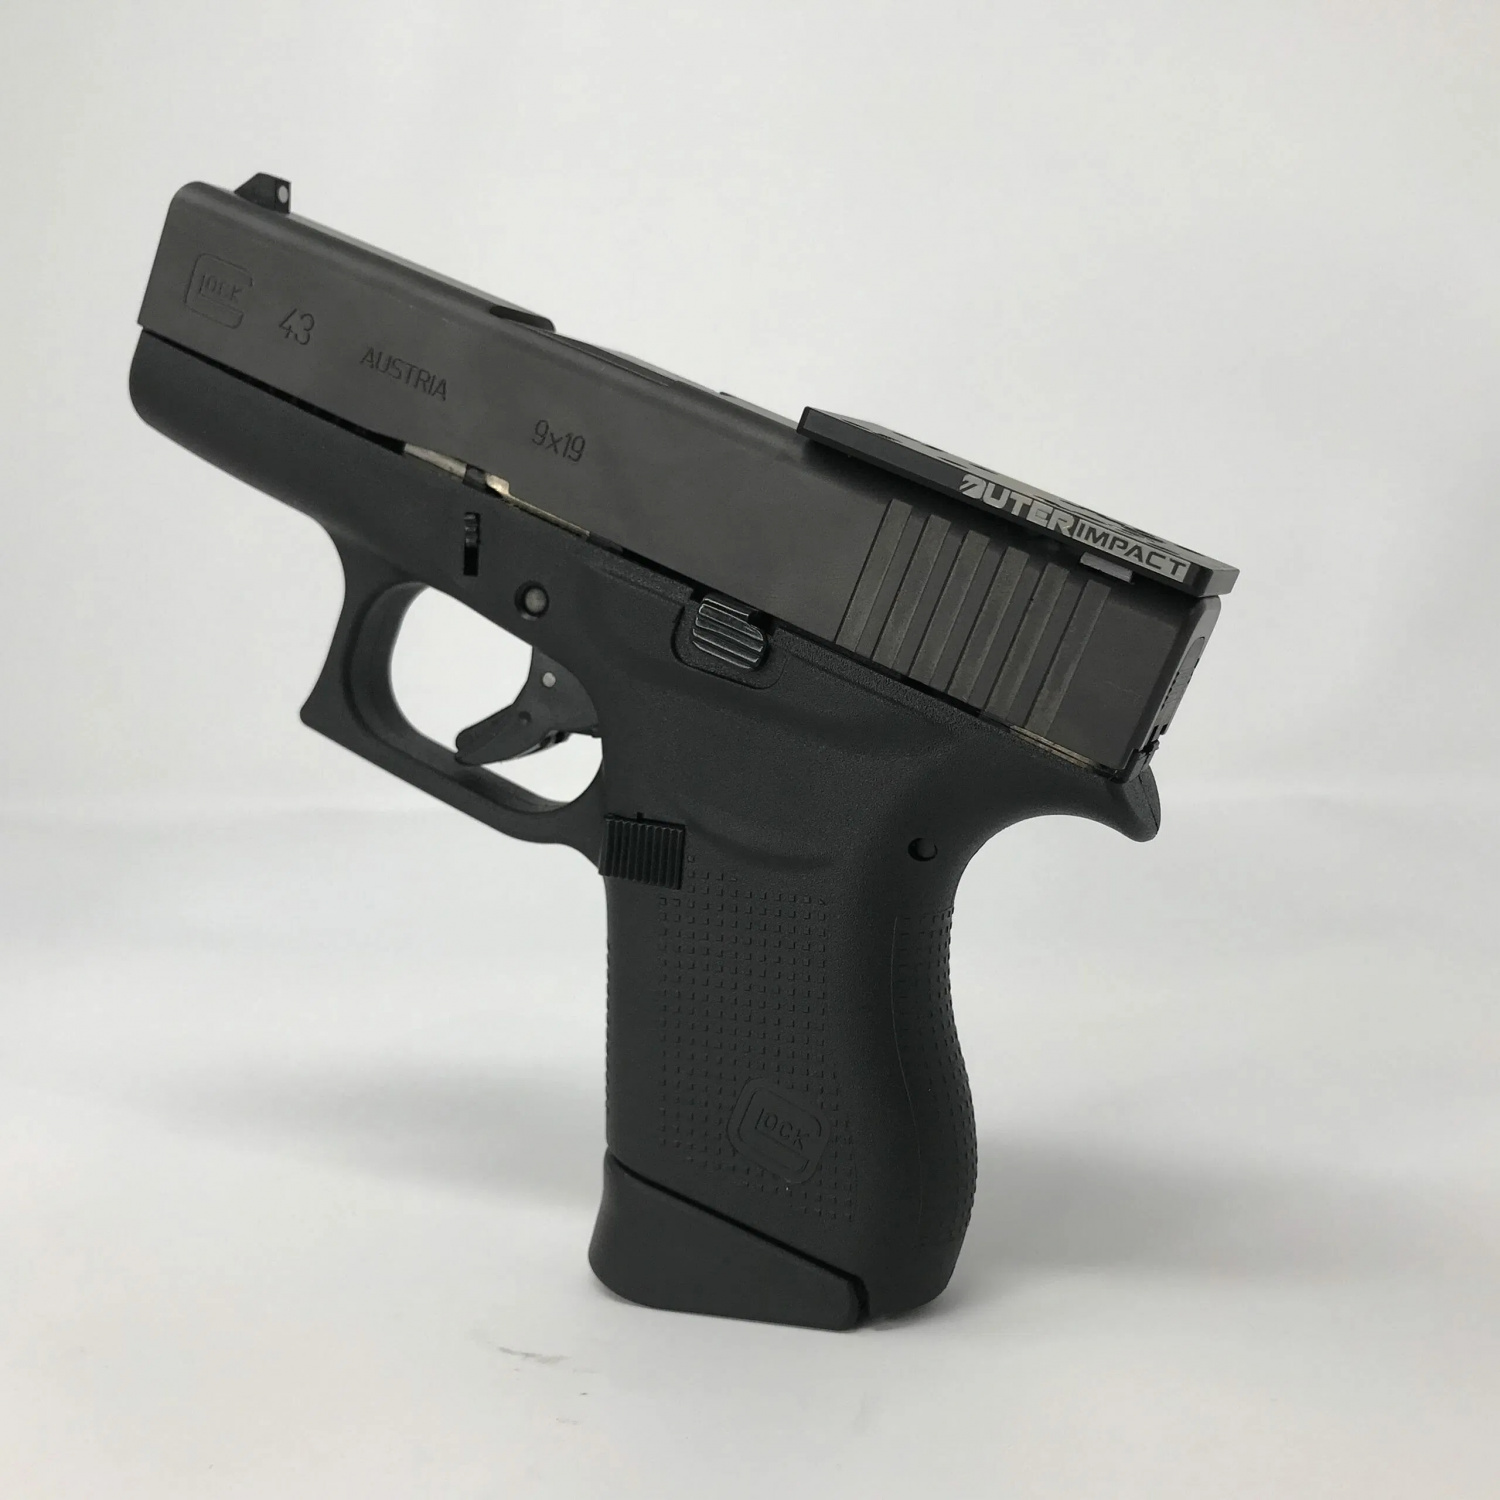 Until this merger, OuterImpact's flagship product has been their M.R.A., or Modular RedDot Adapter, shown here.